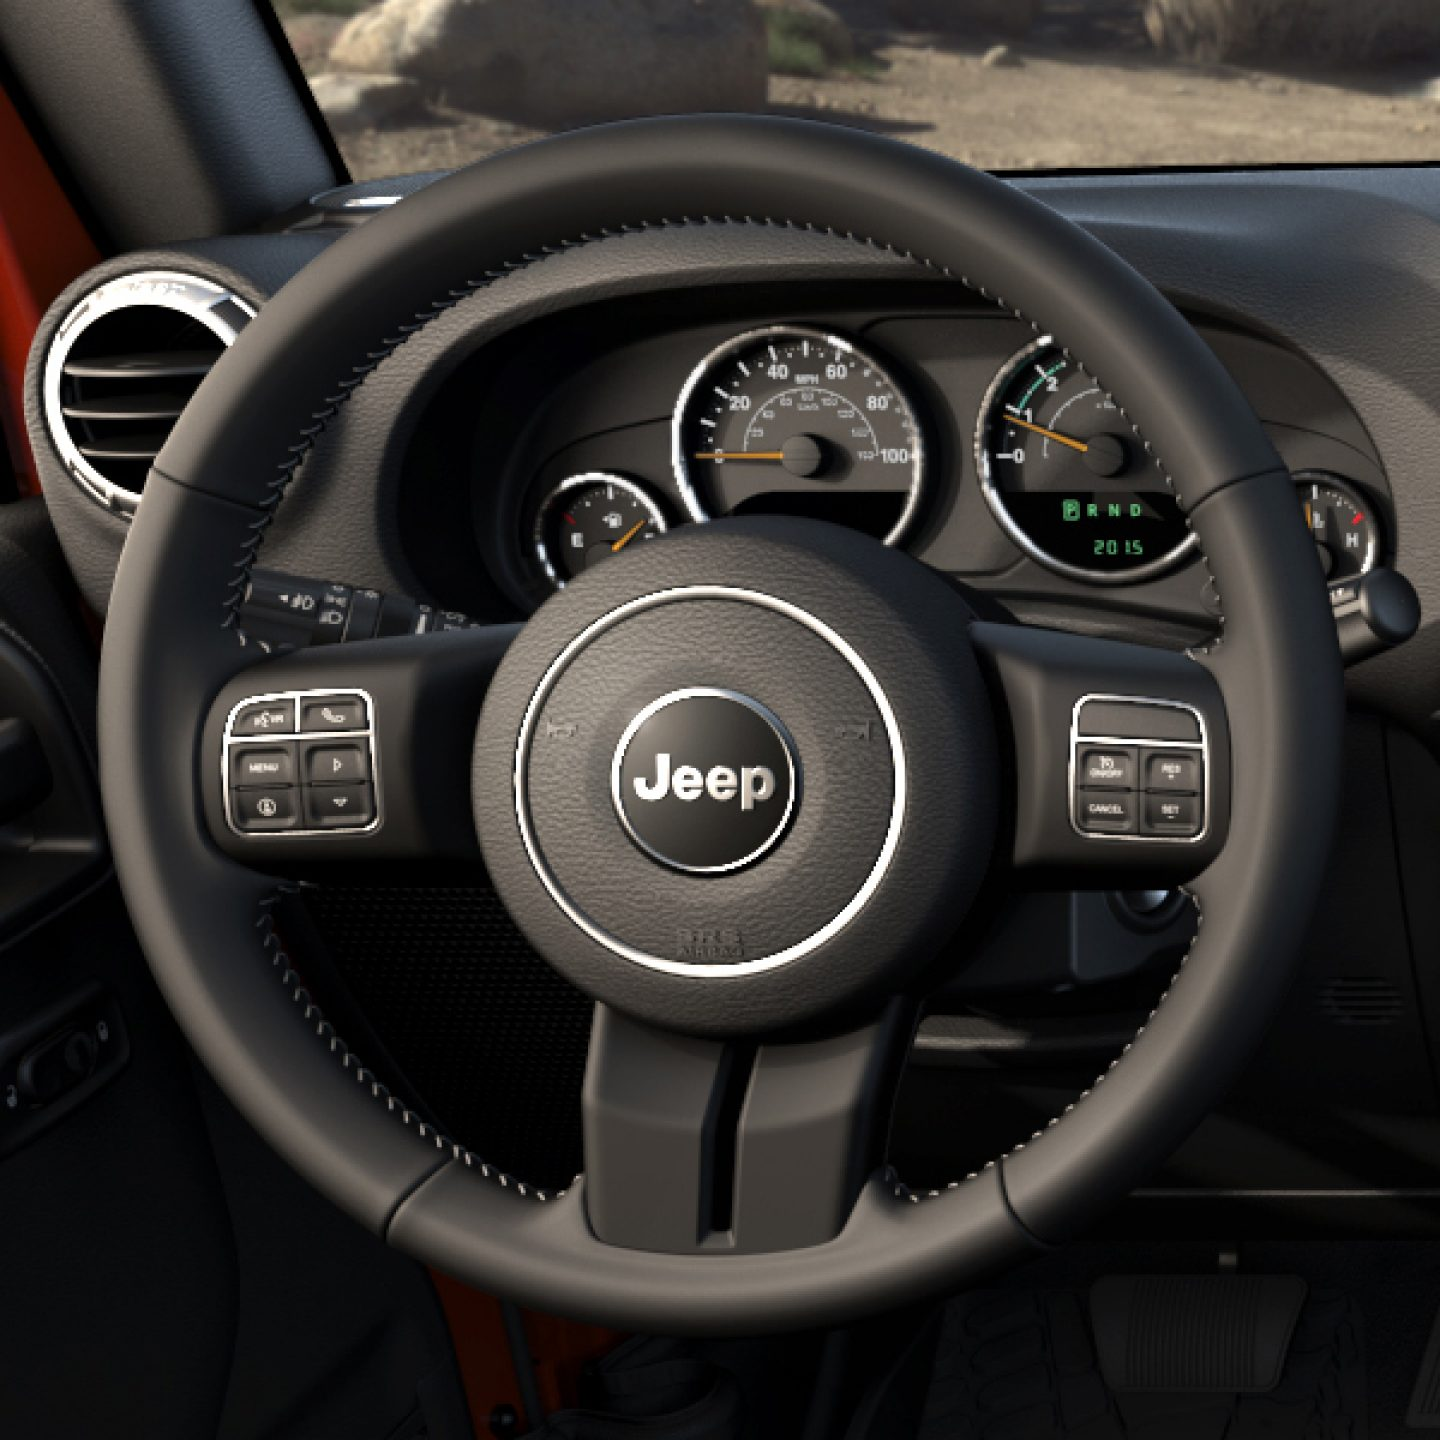 2017 Jeep Wrangler Unlimited Interior Leather Wred Steering